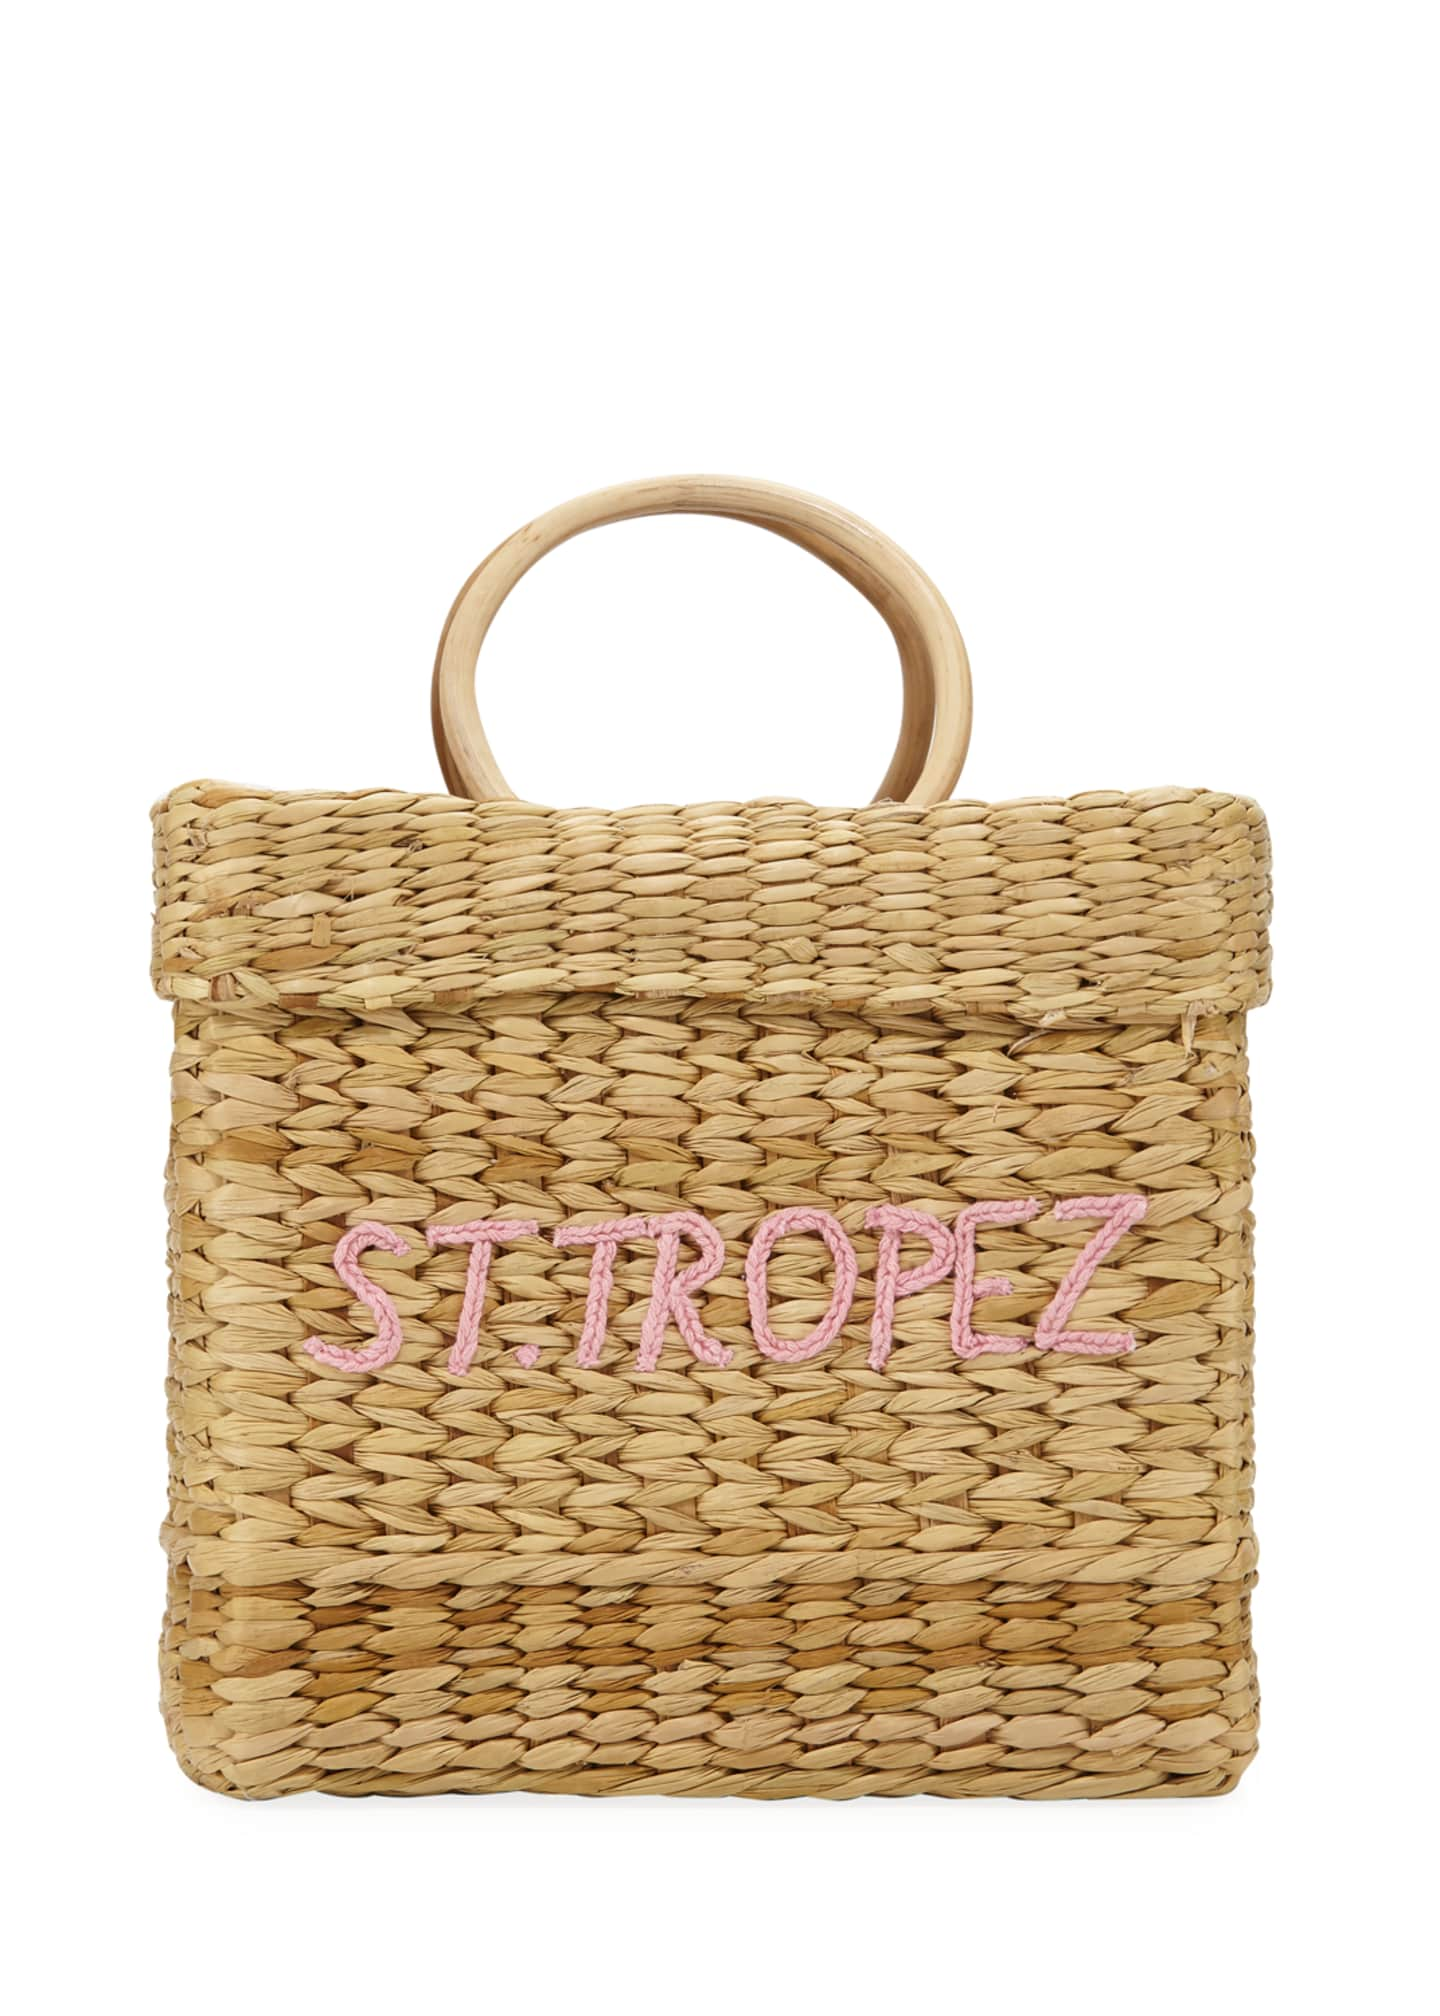 POOLSIDE St. Tropez The Tori Top Handle Bag